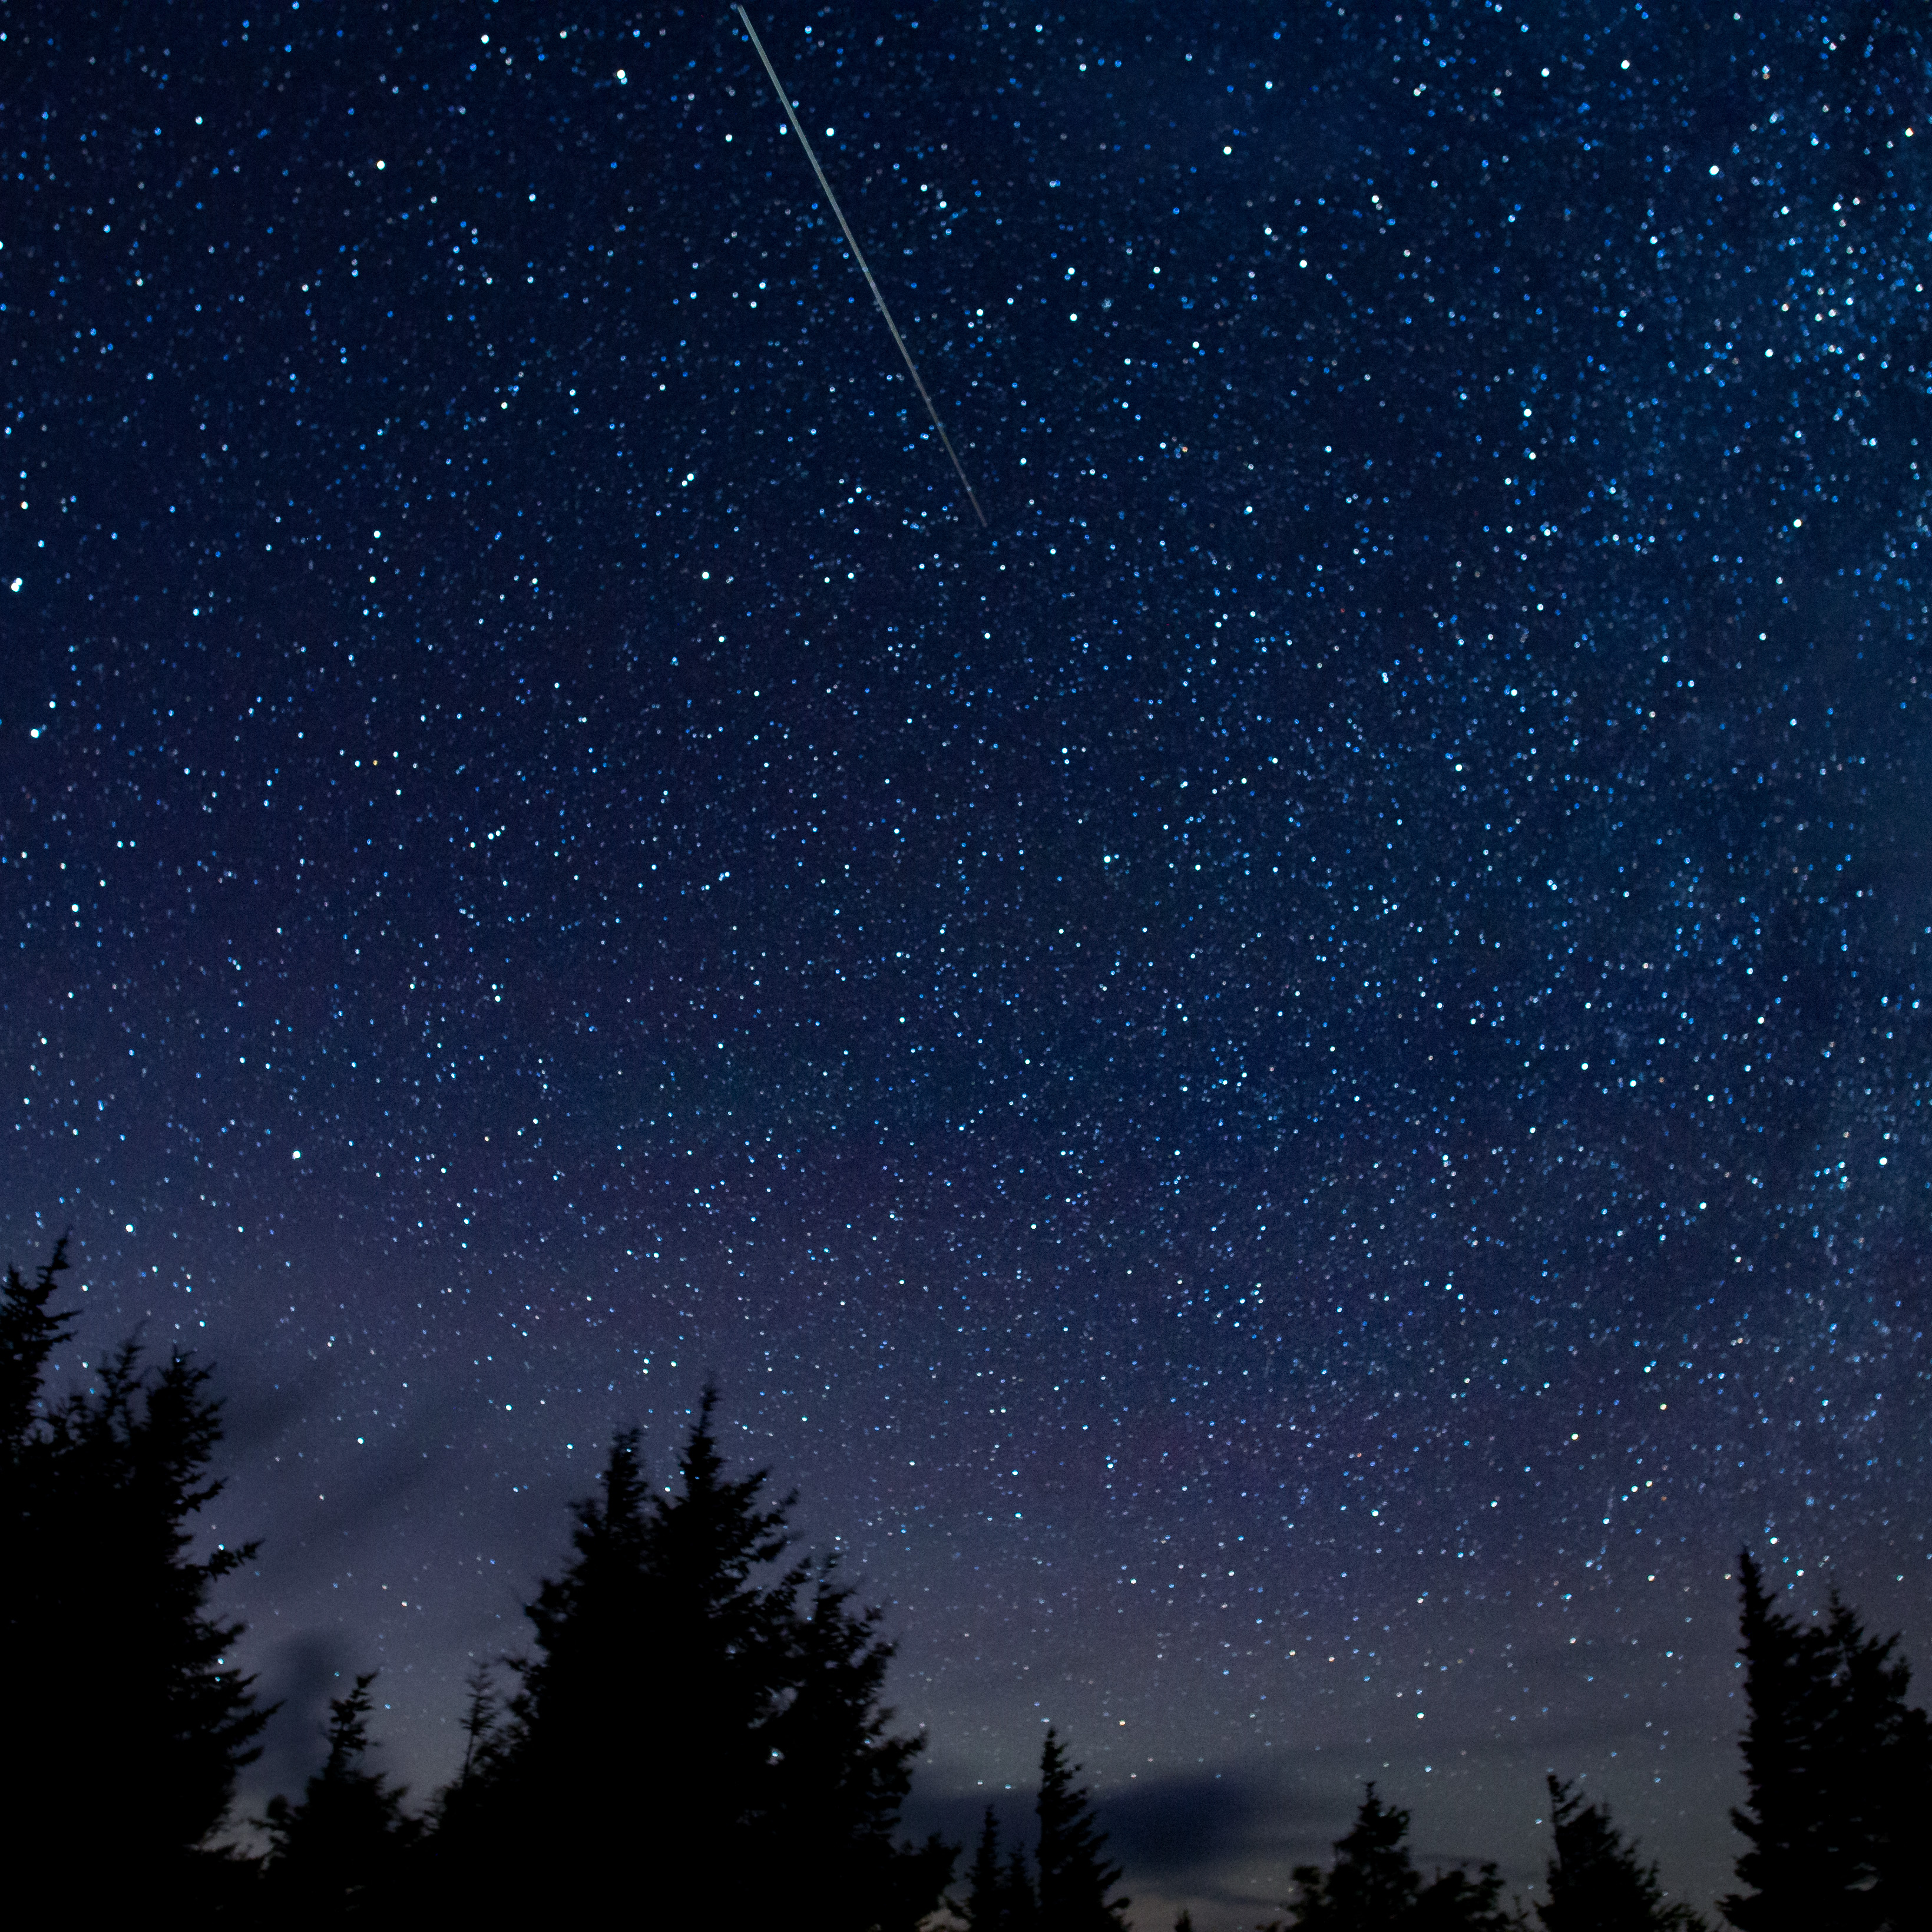 Perseid meter shower to peak this Saturday